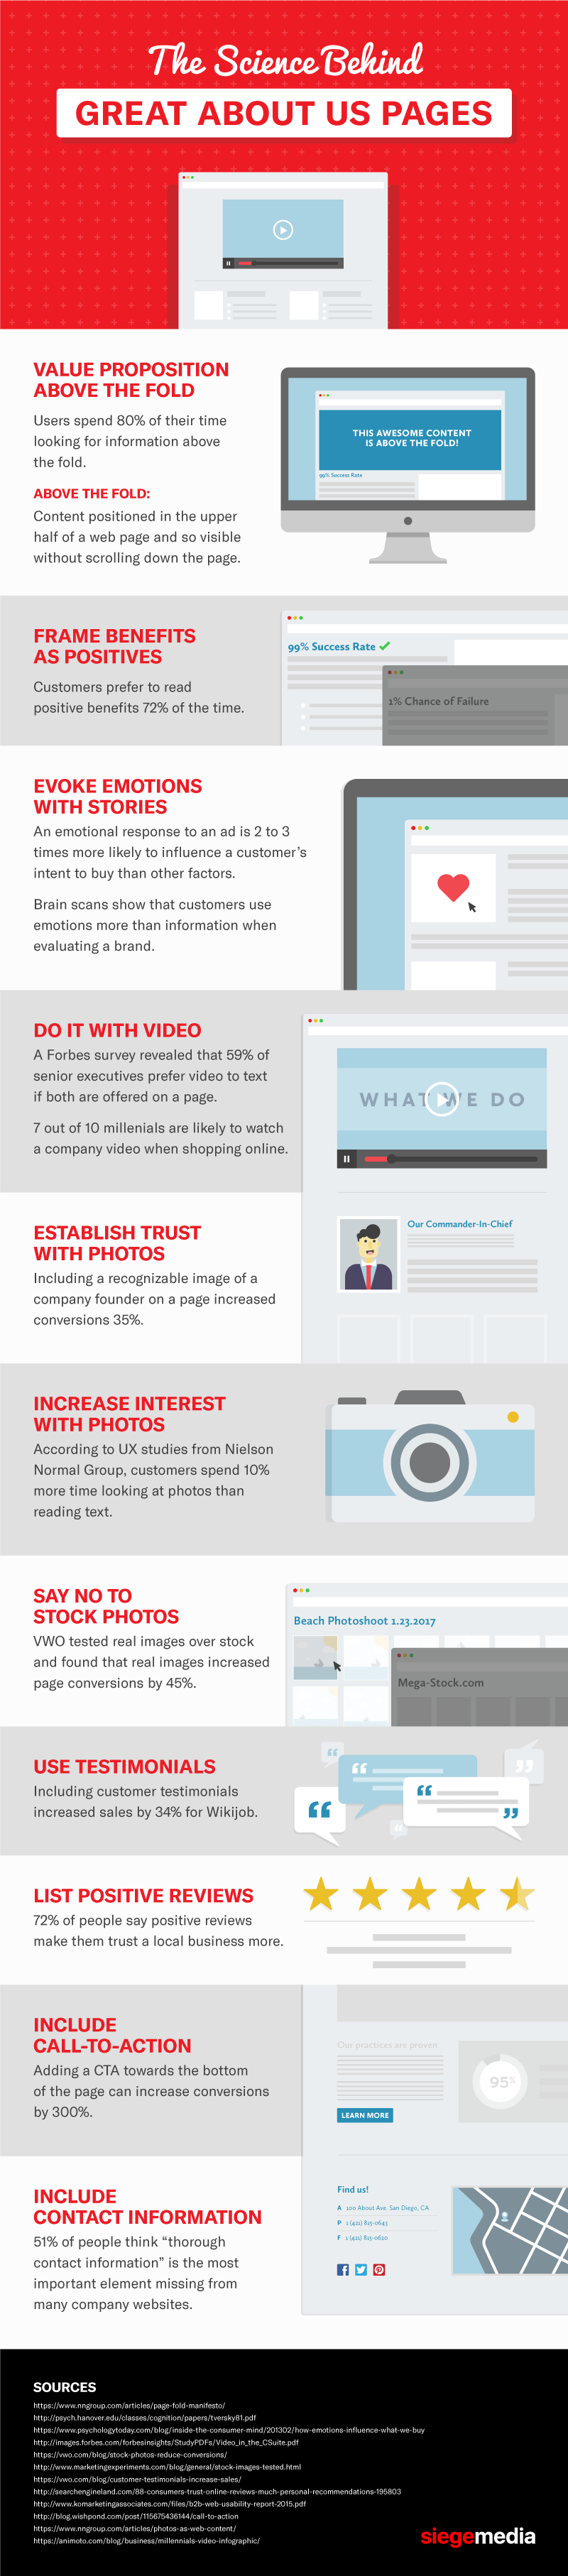 Infographic: Great About Us Pages